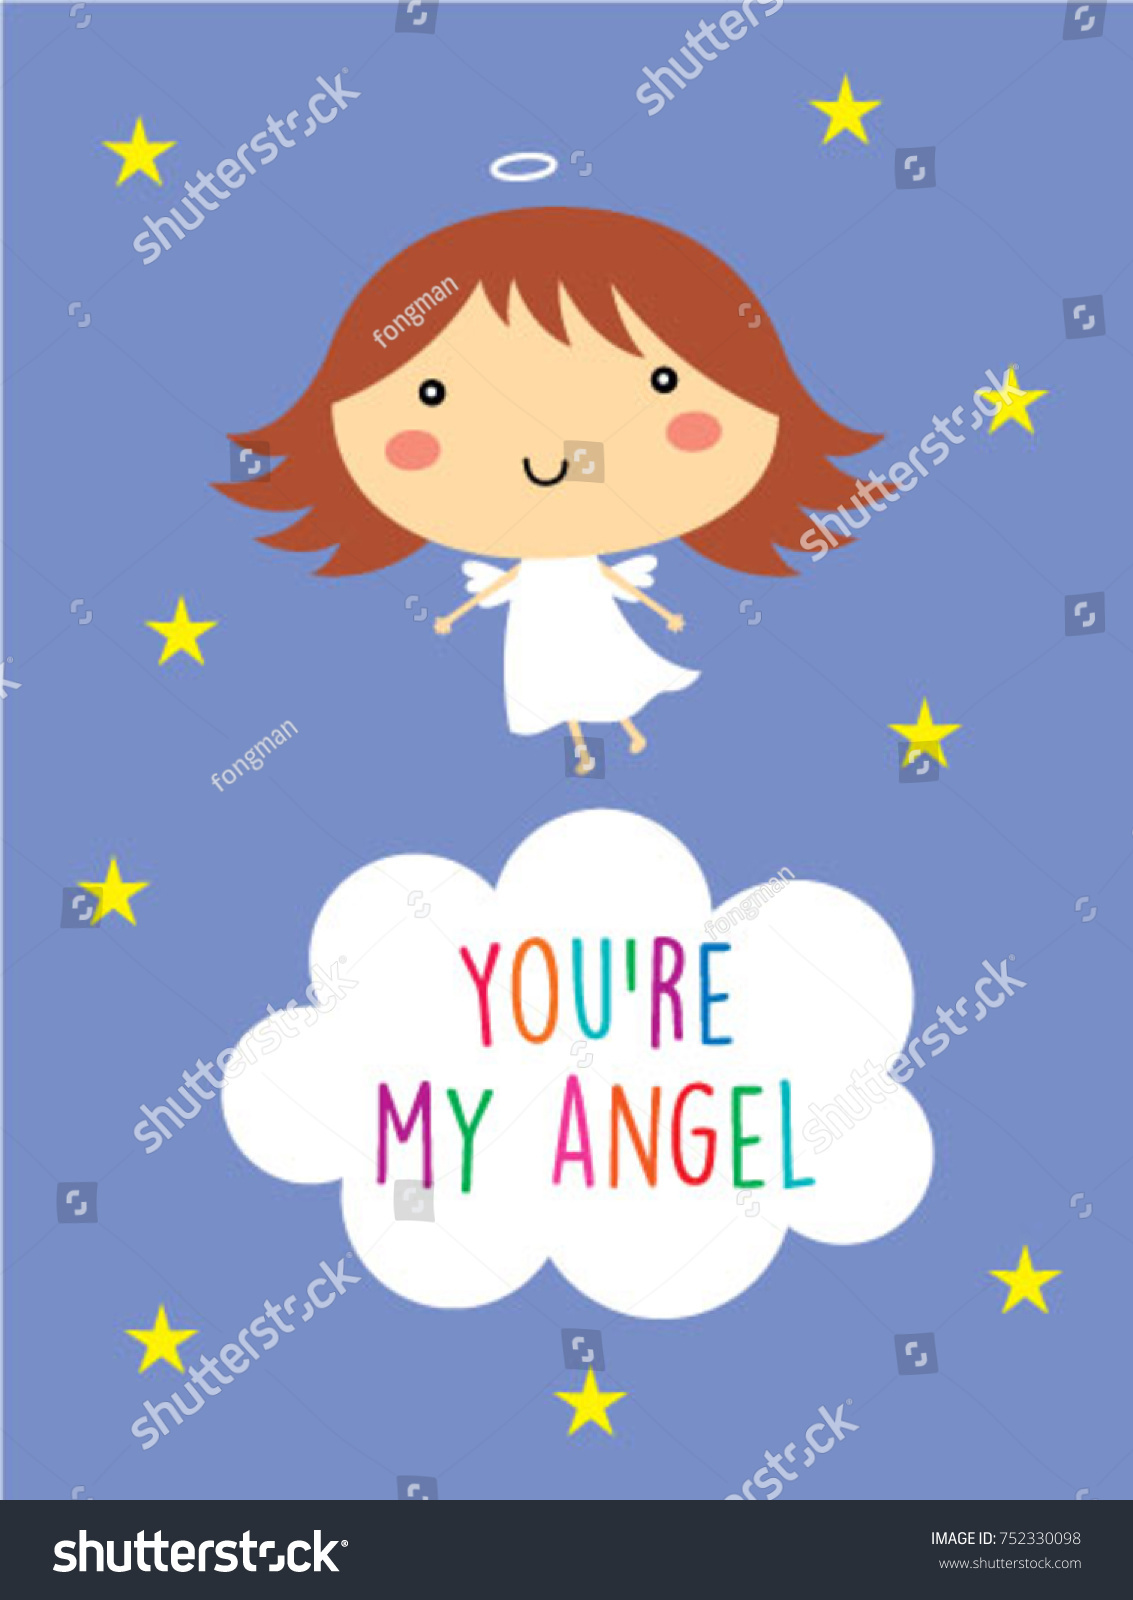 Cute You My Angel Greeting Card Stock Vector (Royalty Free